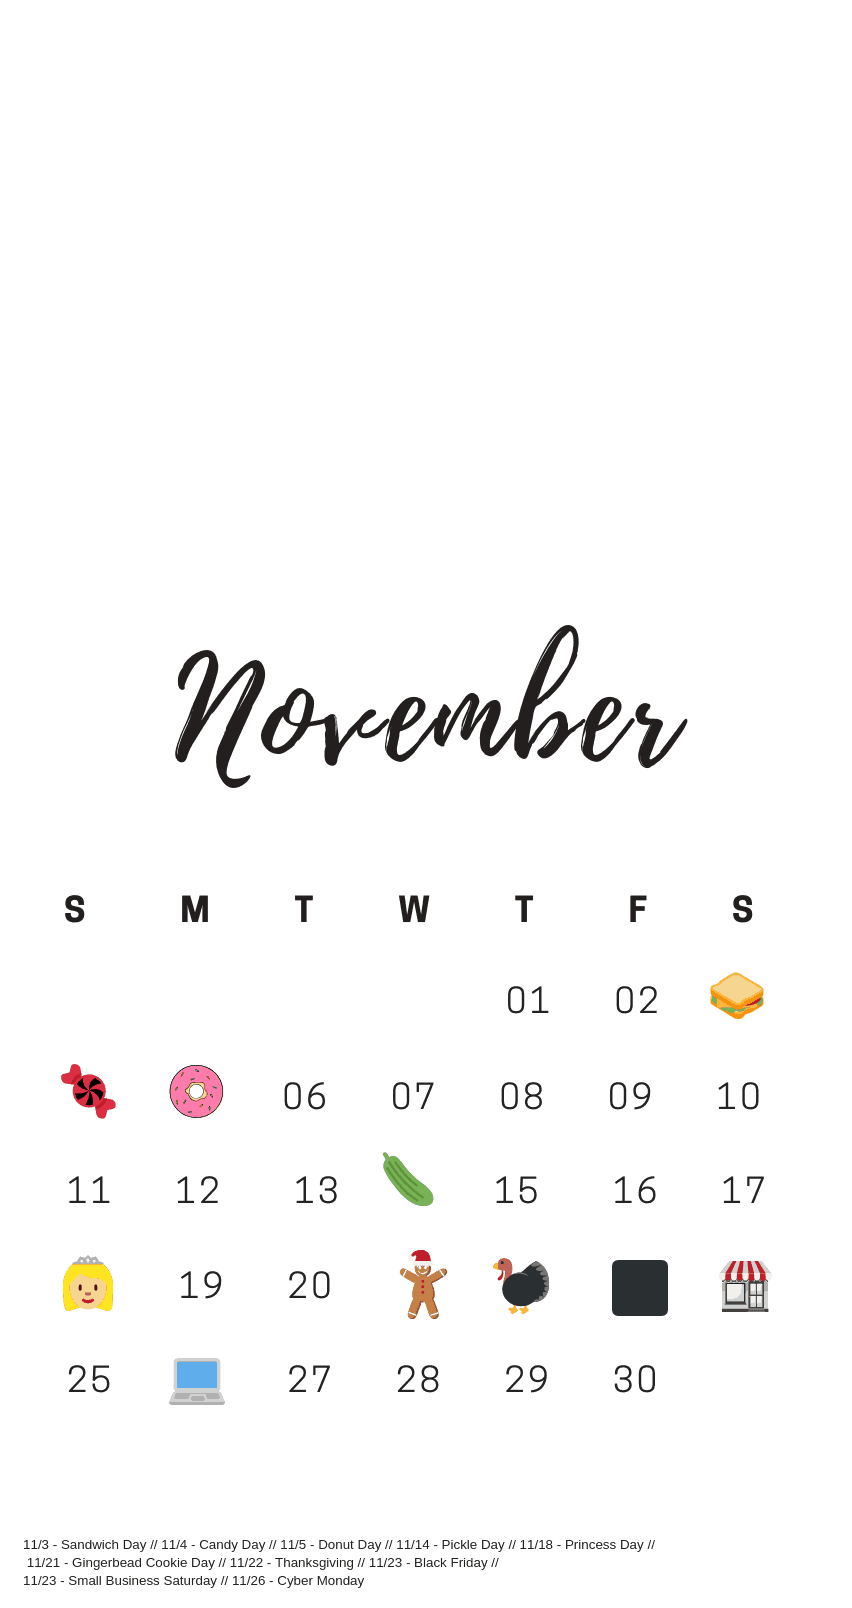 November National Days Calendar